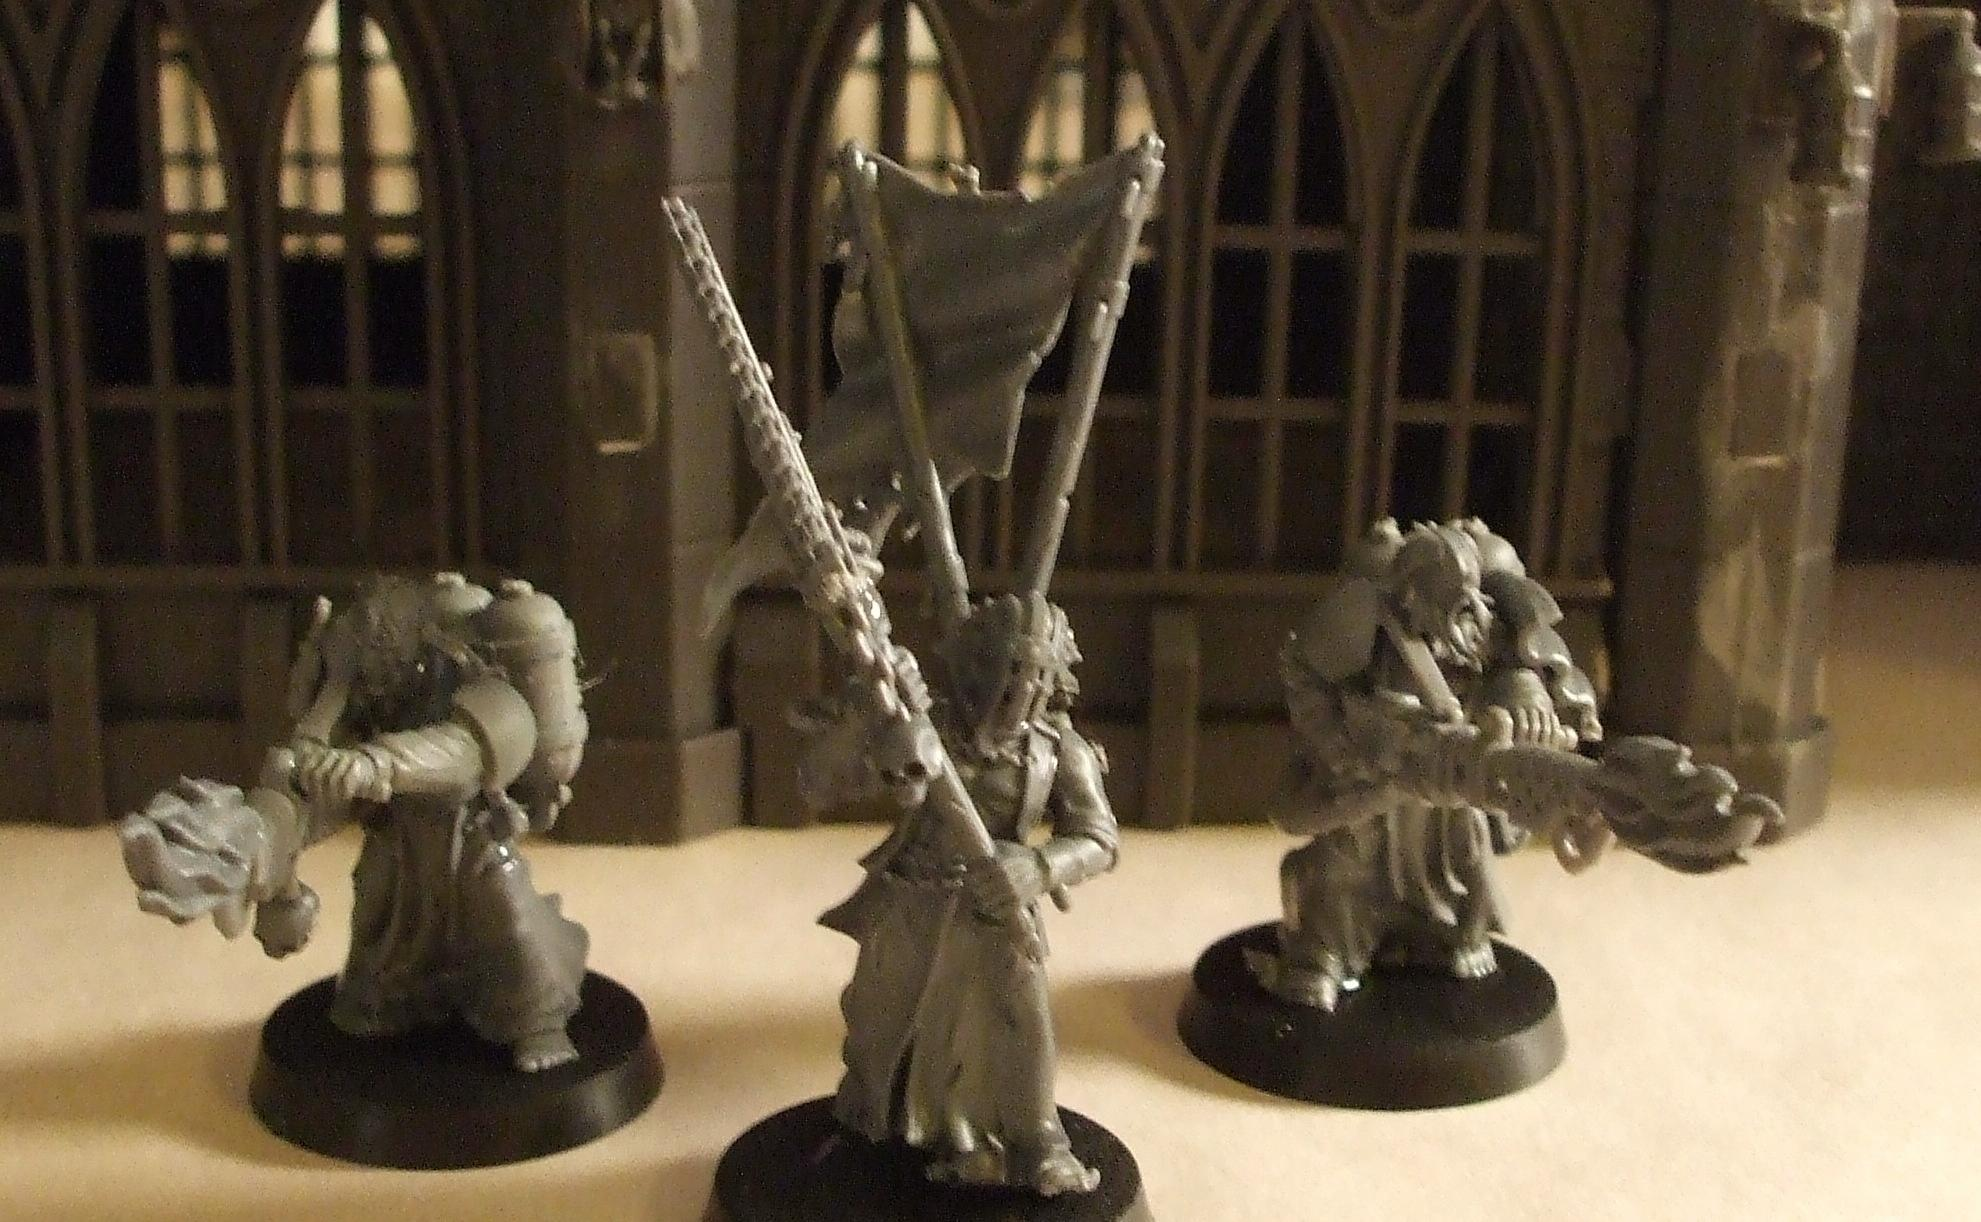 Flamer, Inquisition, Witch Hunters, Zealots